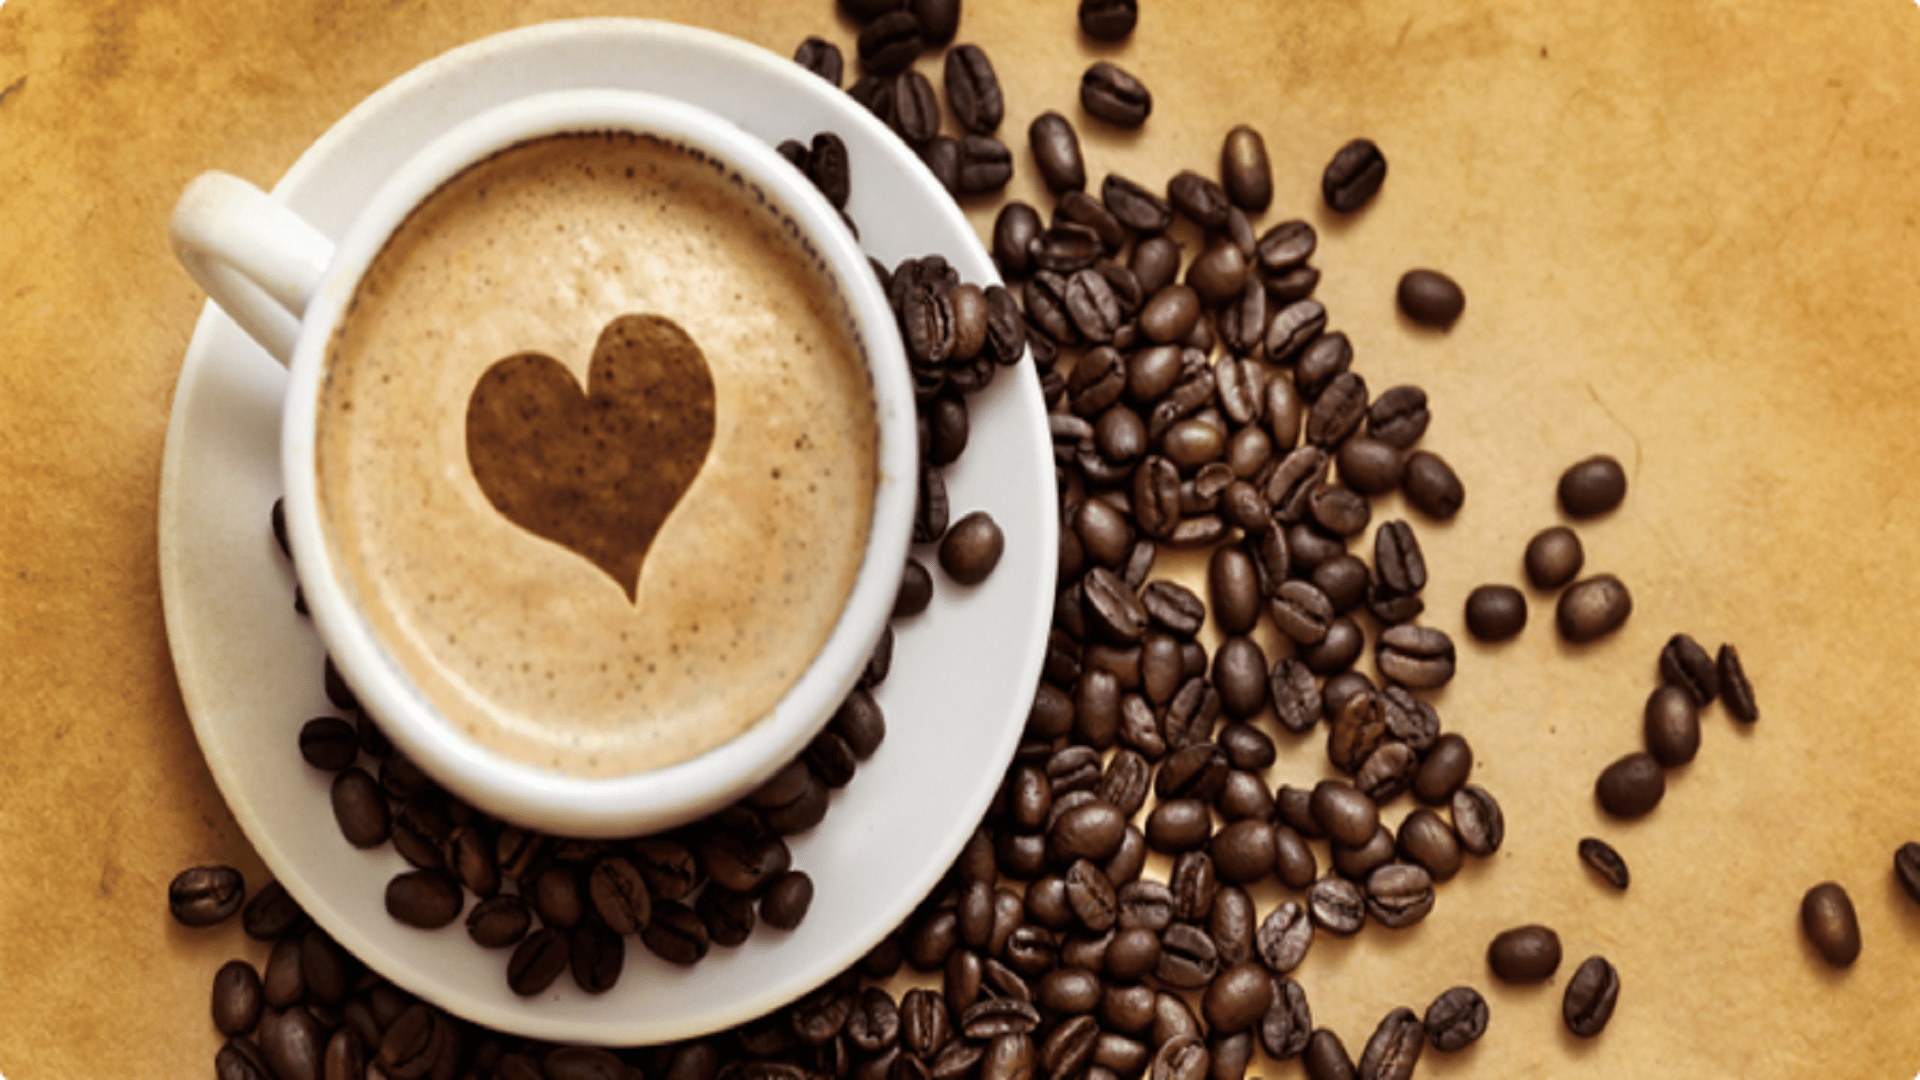 Wallpapers Free Download Hd 3d Coffee Pic Free Hd Wallpapers For Desktop Hd Wallpaper